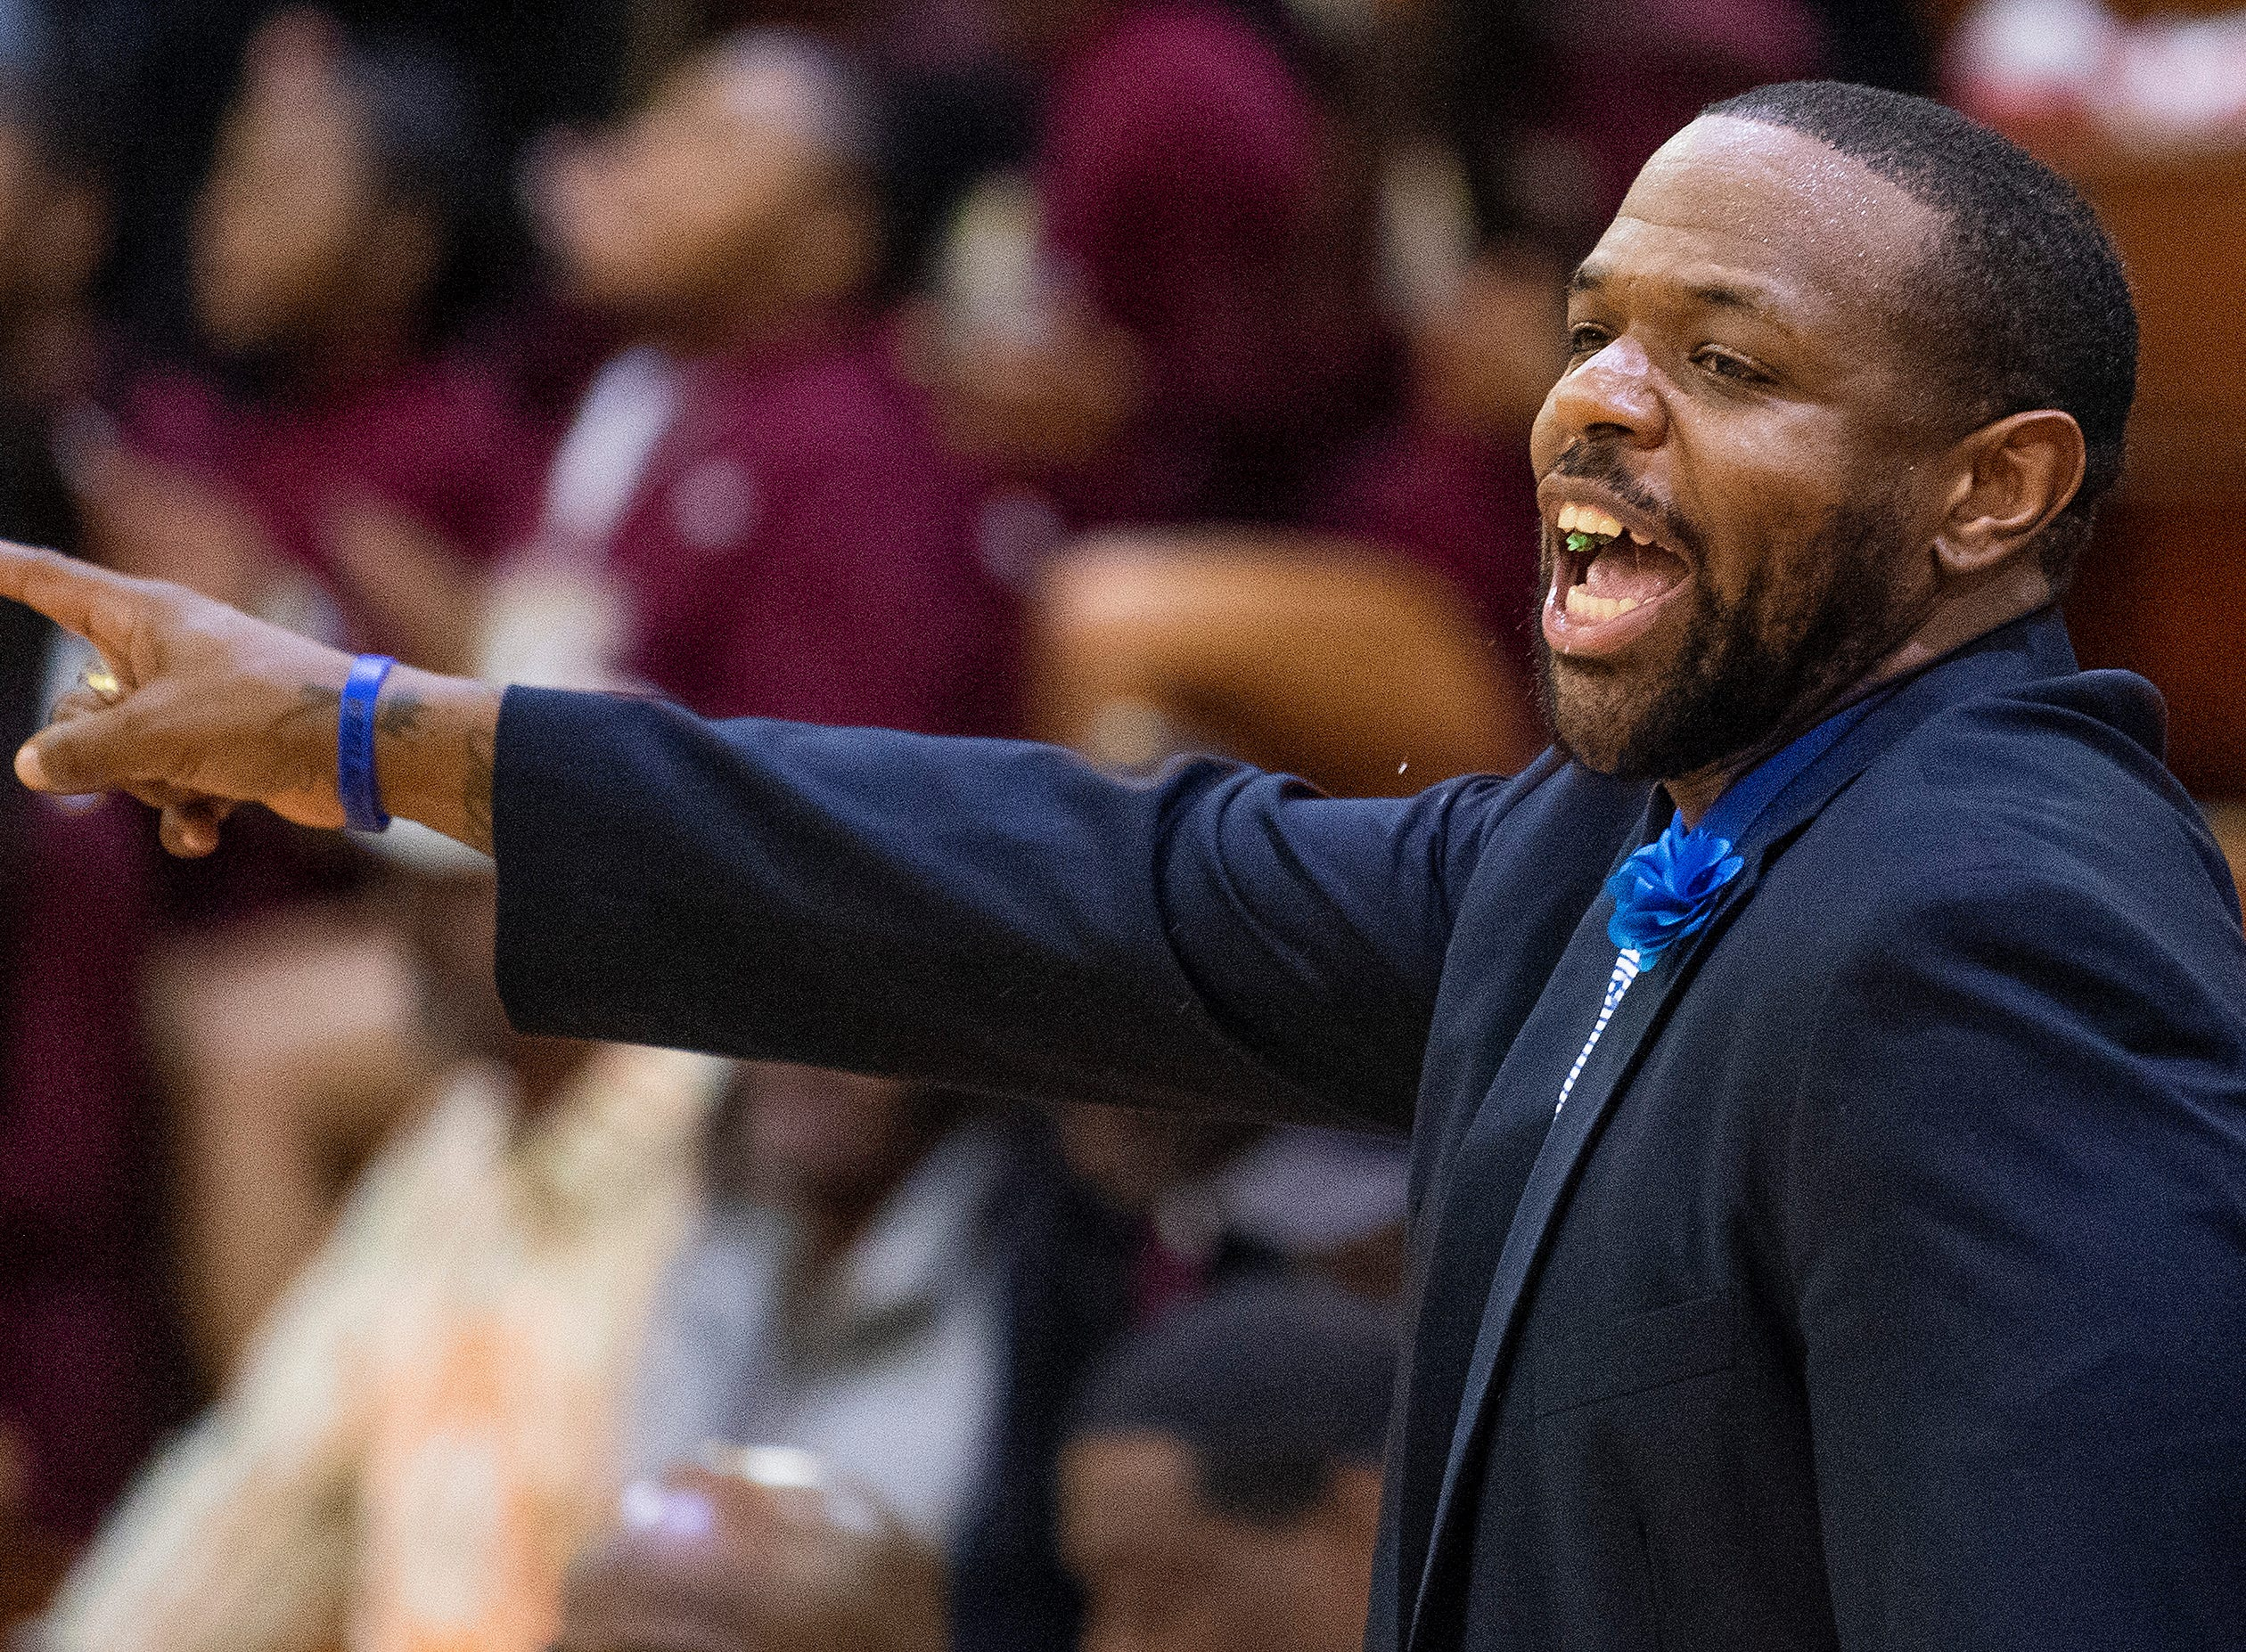 Lanier coach Brian Williams coaches against Northview at the Lanier campus in Montgomery, Ala., on Tuesday February 12, 2019.